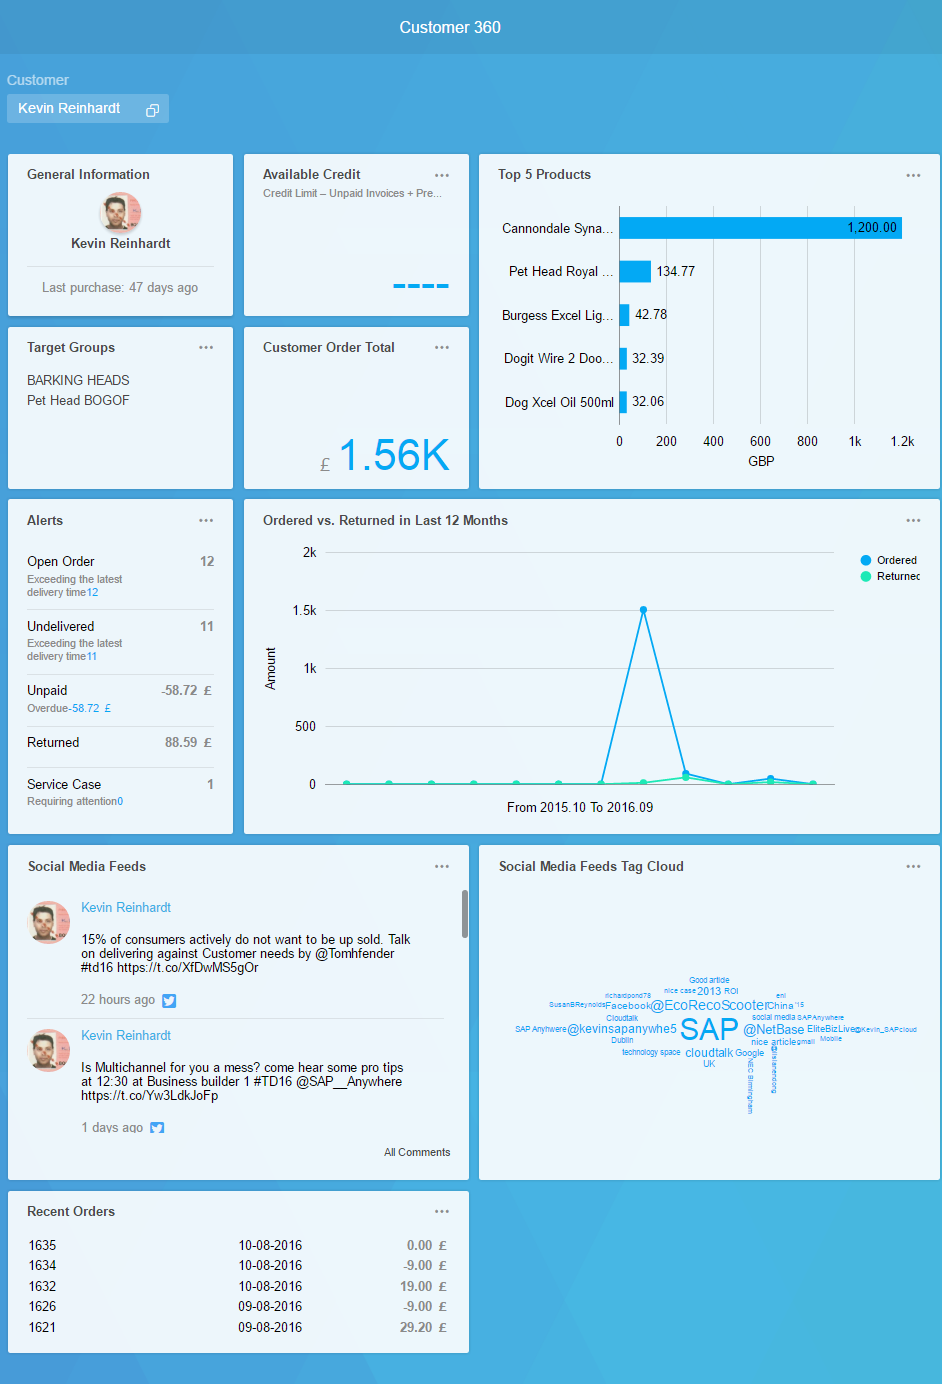 A screenshot of SAP 360 Customer, showing analytics for each of your customers.